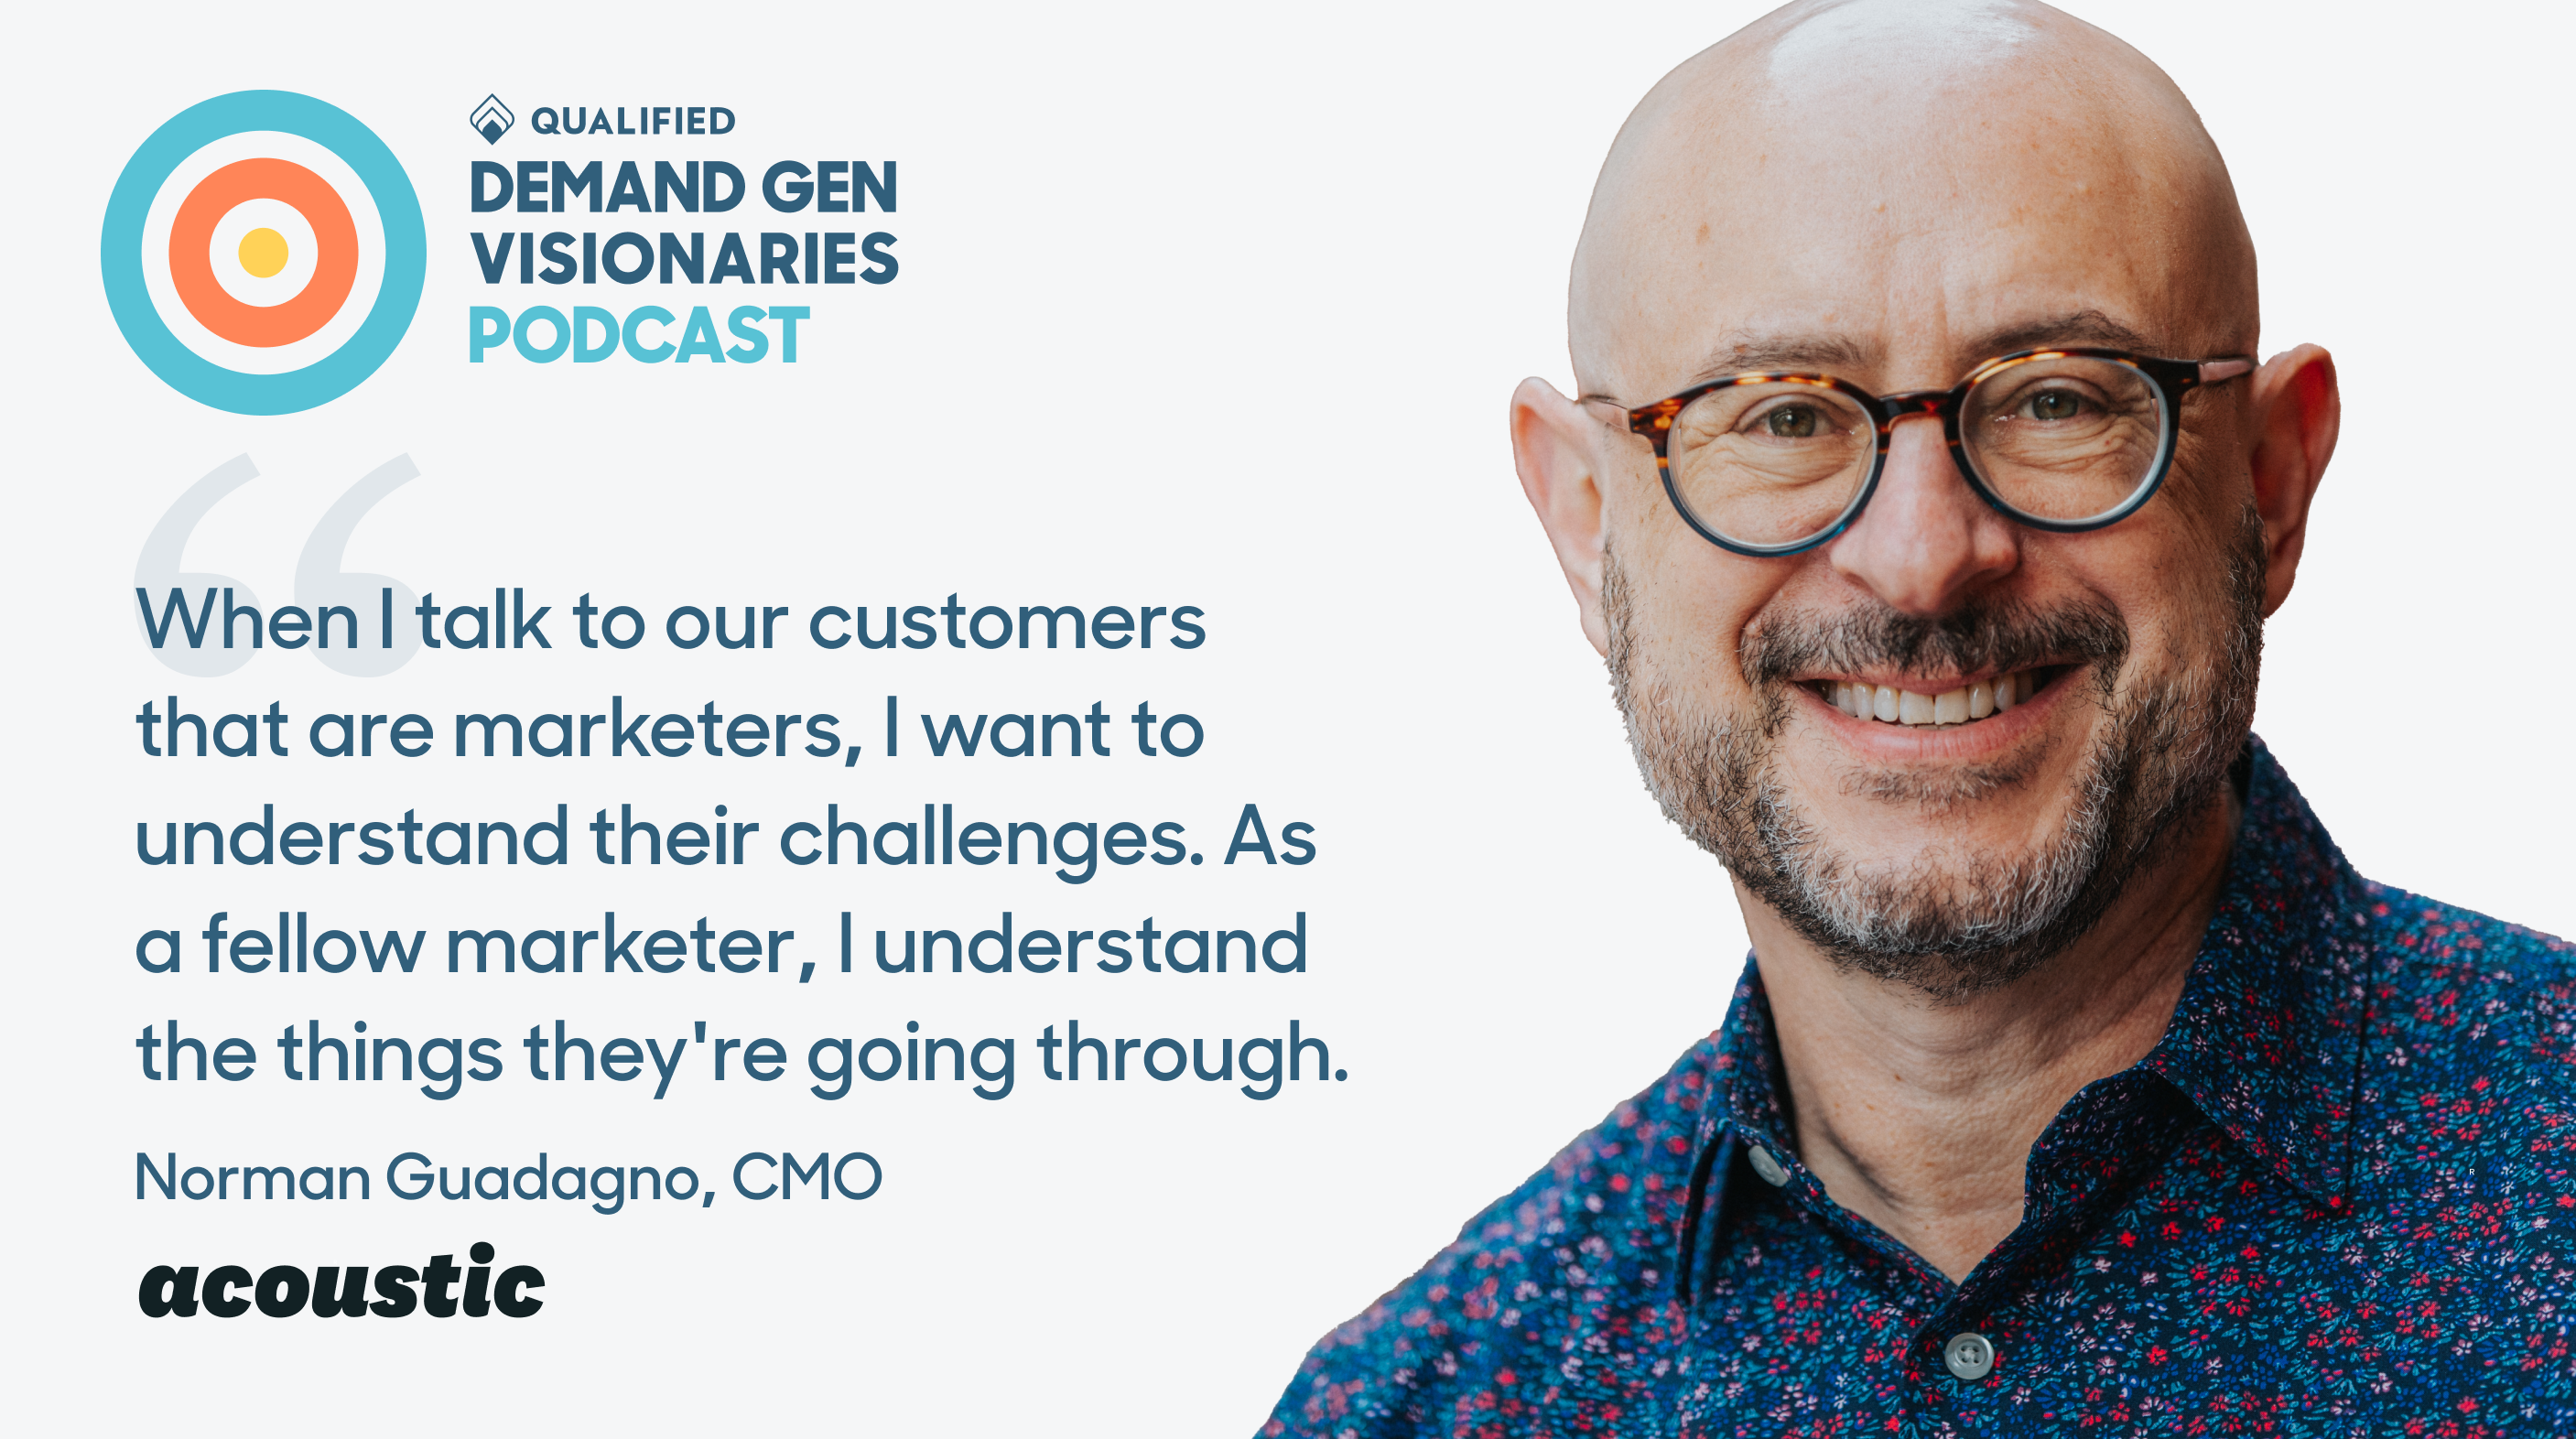 Norman Guadagno joins Demand Gen Visionaries podcast, hosted by Qualified the #1 conversational sales and marketing platform for Salesforce.